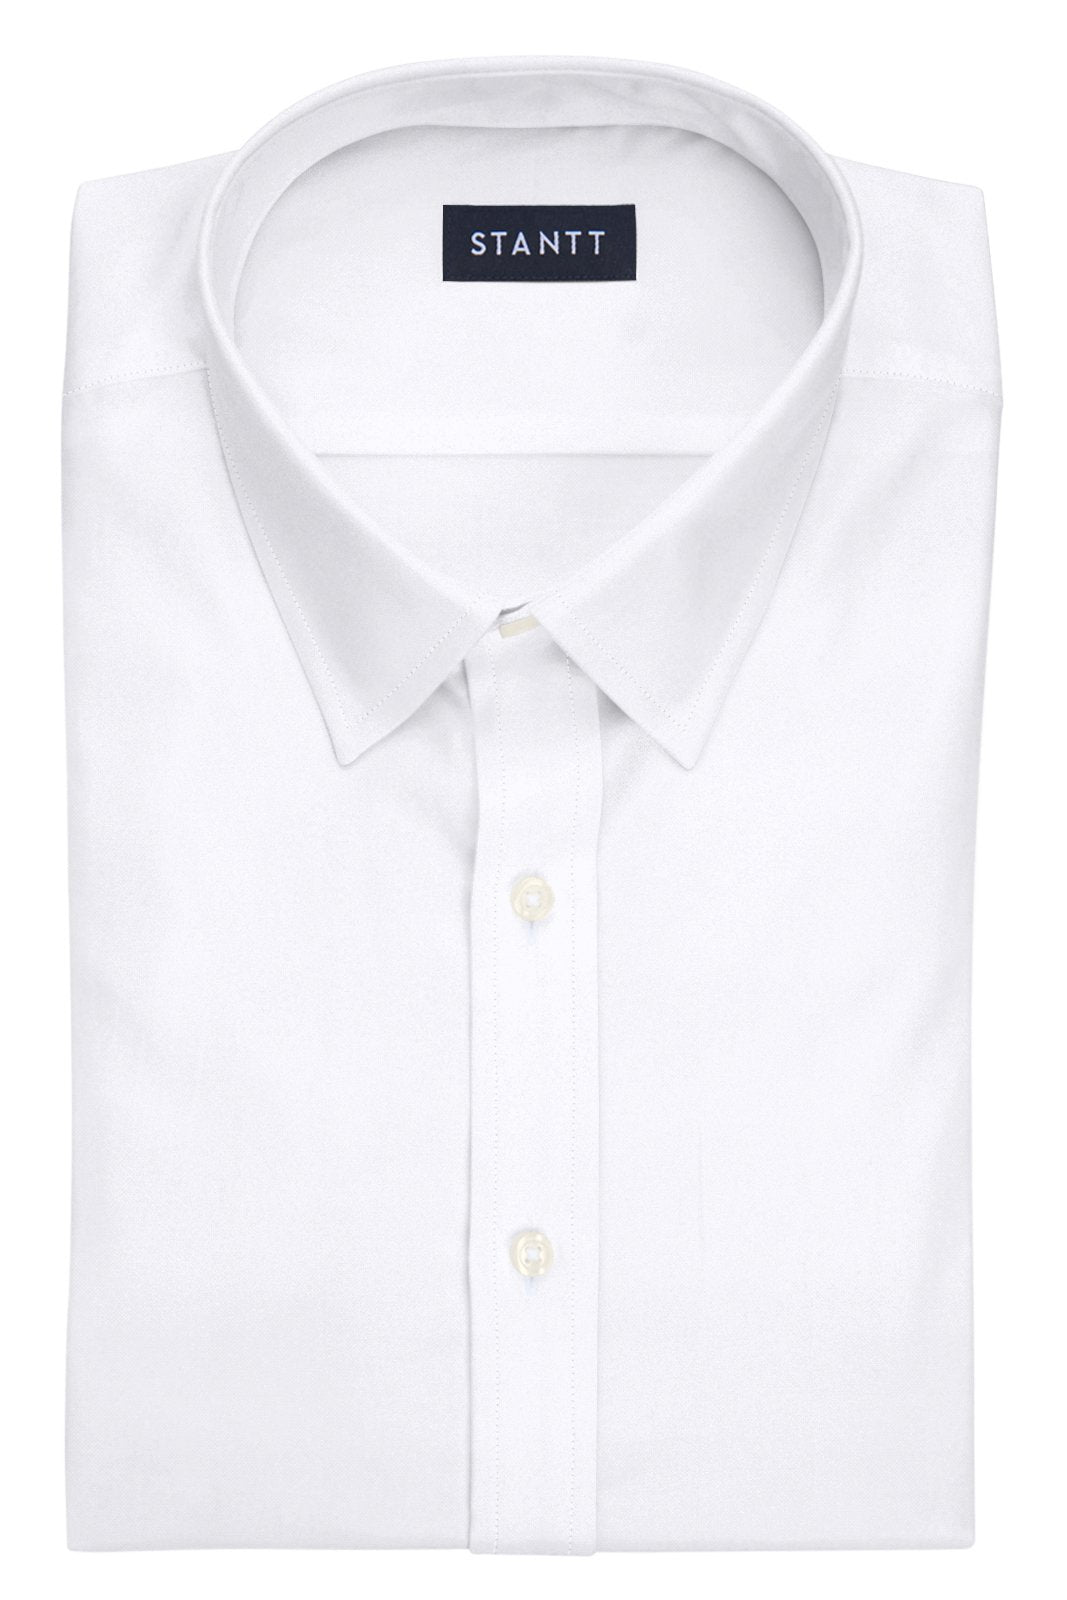 White Oxford: Semi-Spread Collar, Barrel Cuff